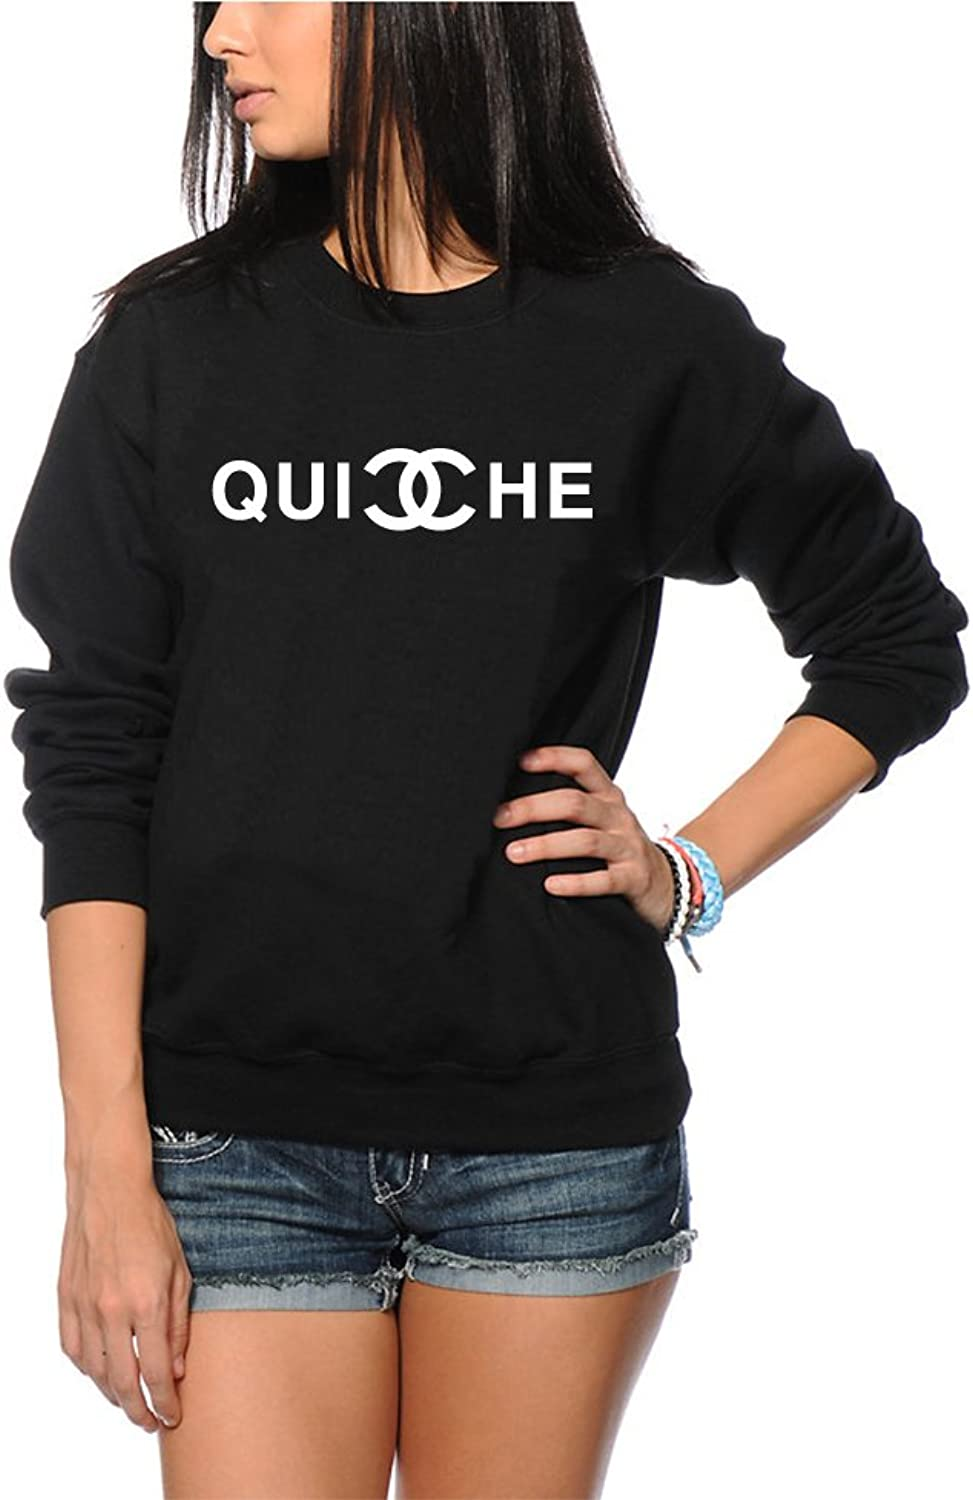 Hotscamp Adults Unisex Sized Ja'mie Quiche King Private Jumper Sweatshirt